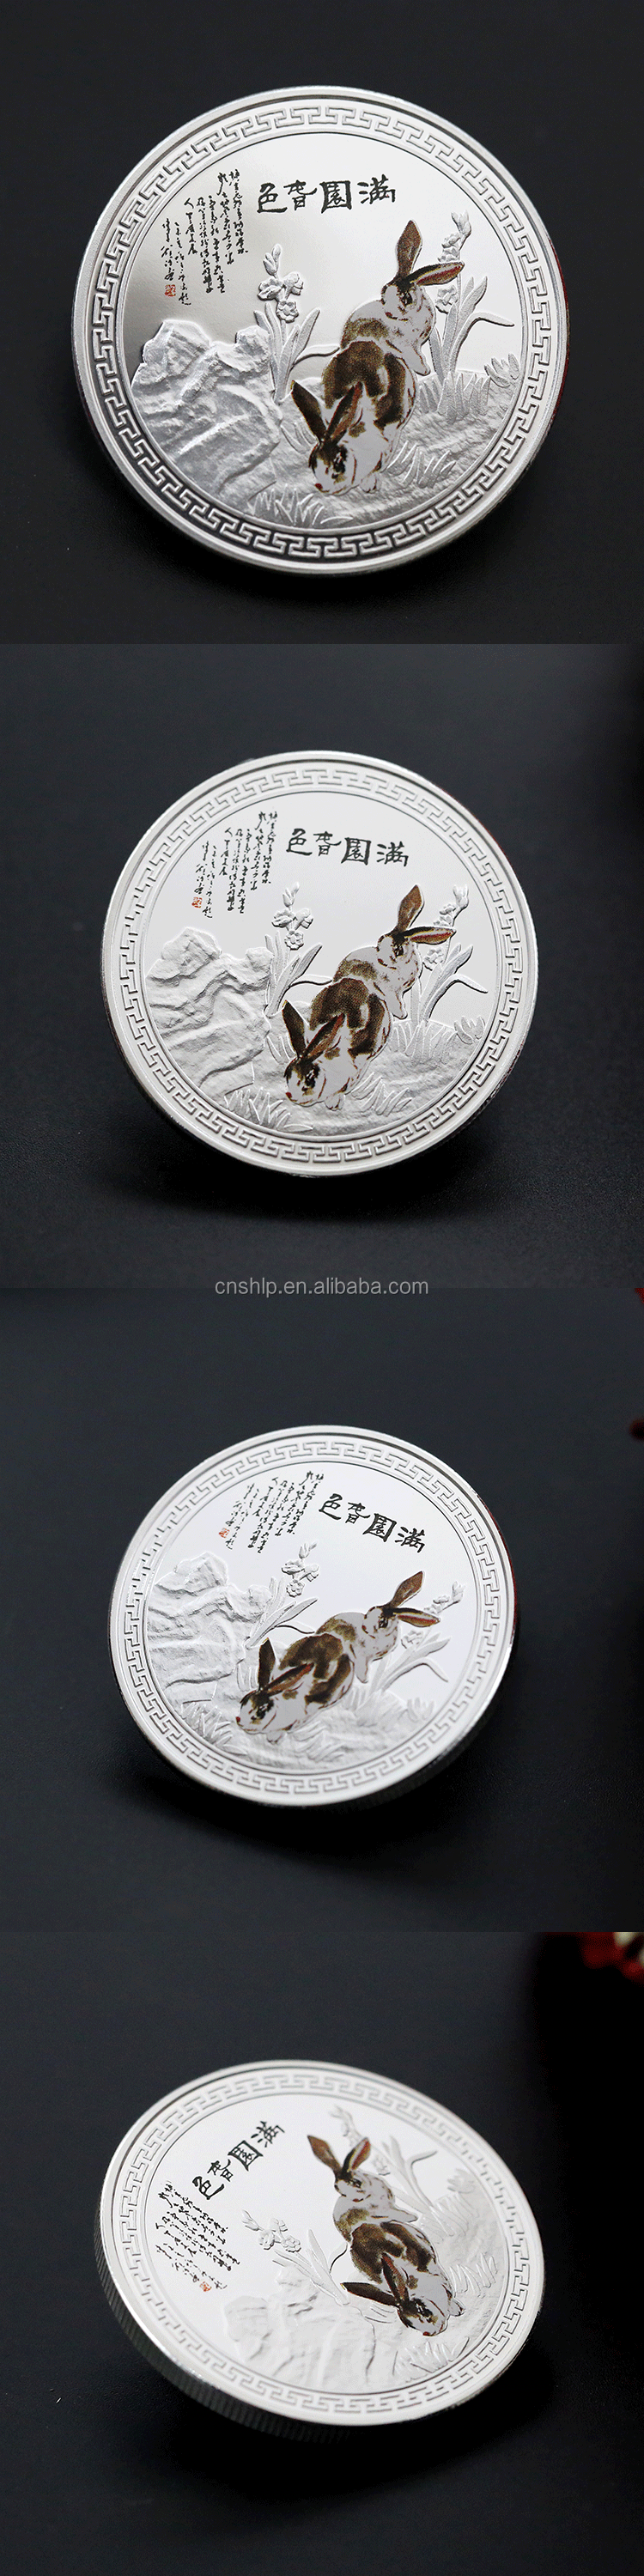 Custom The Year Of Rabbit metal silver challenge coin with box